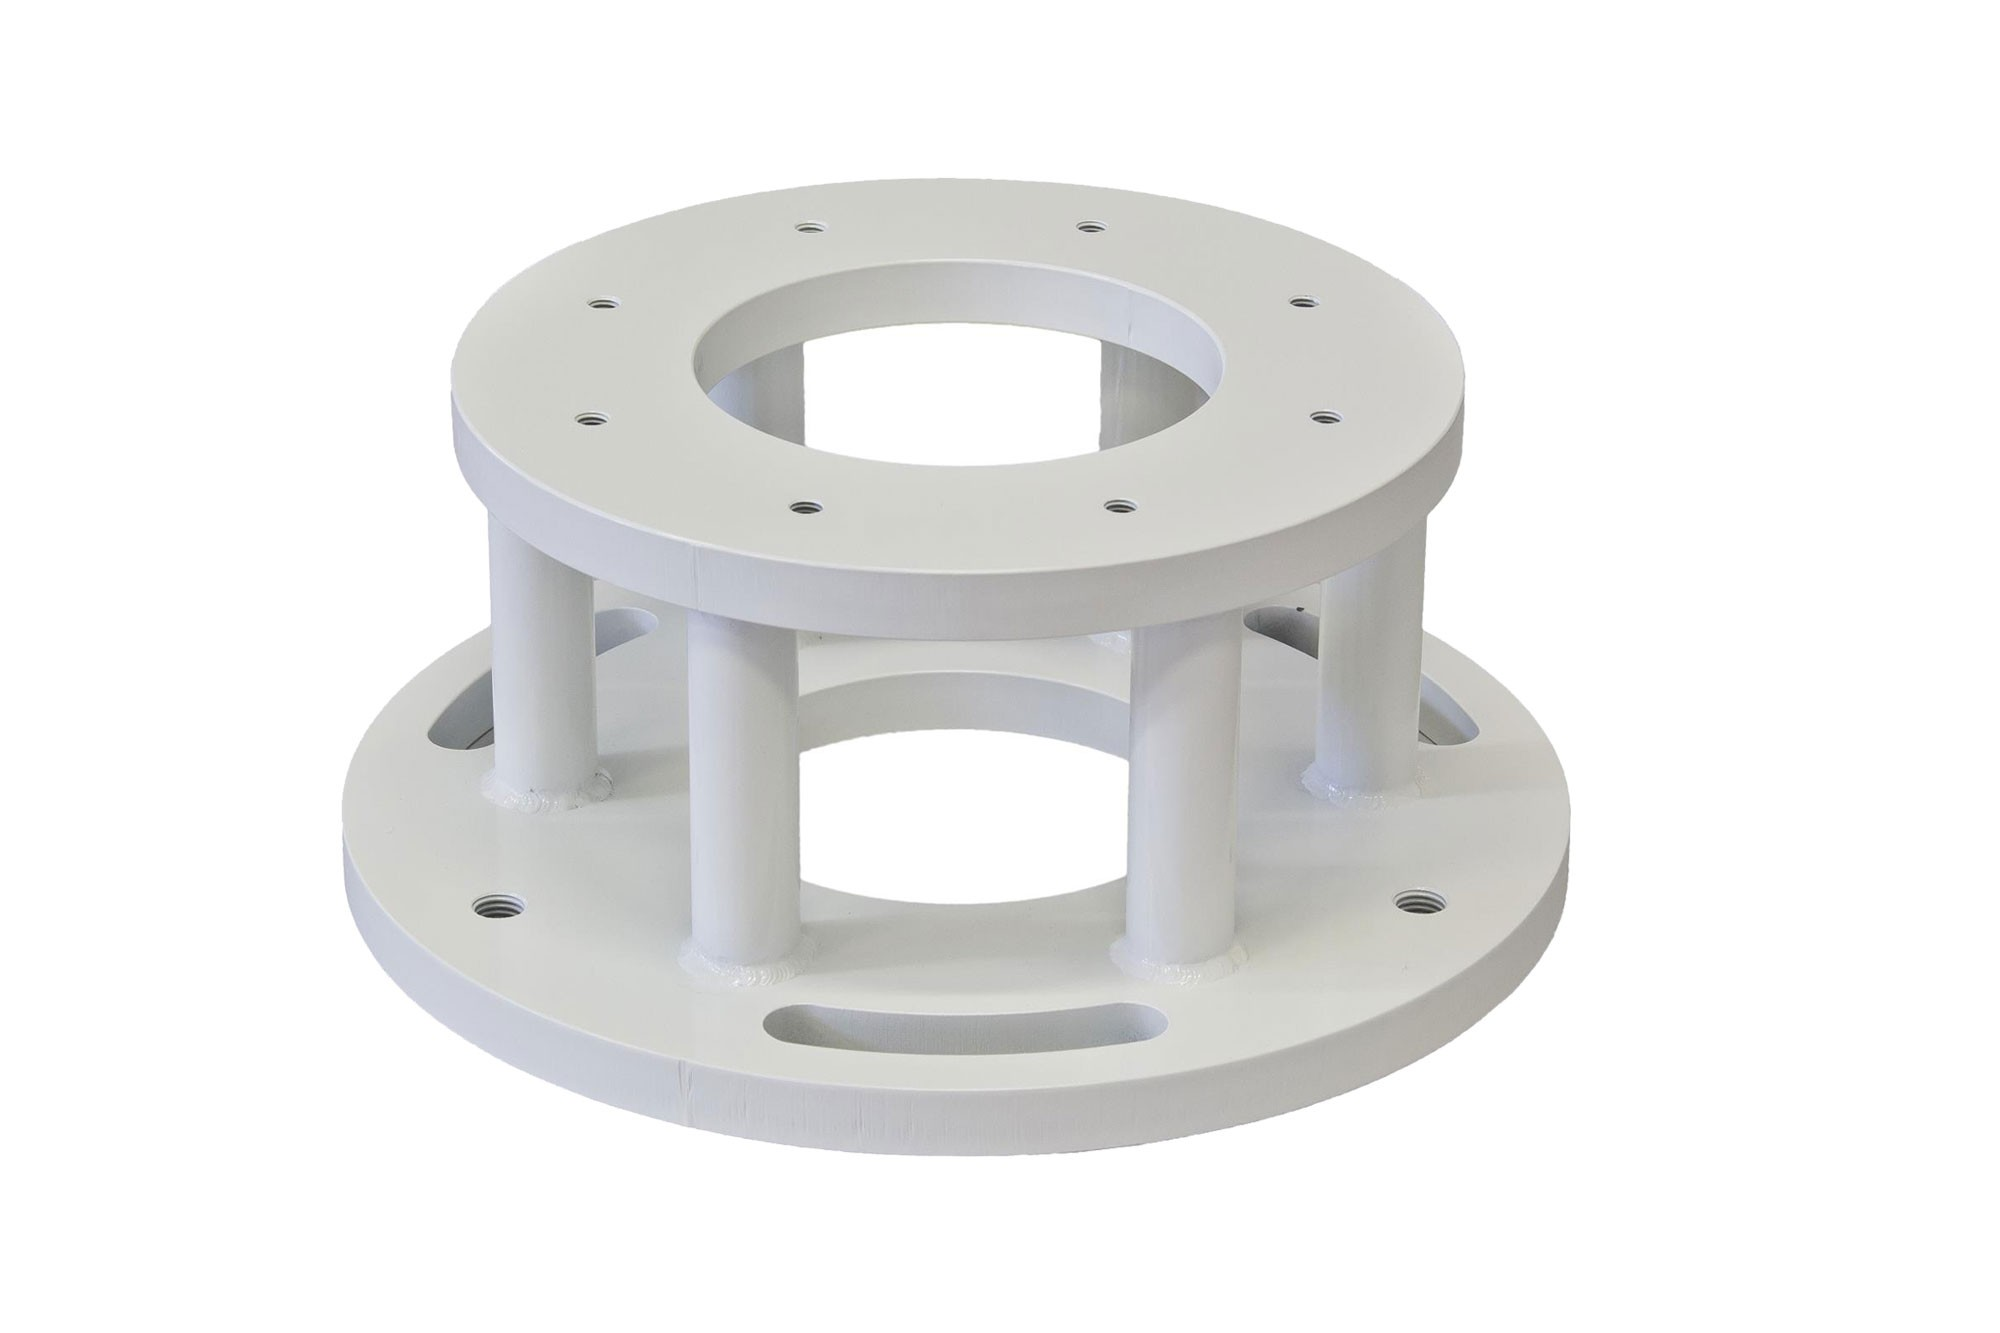 Baader Heavy Pillar (BHP) Levelling Flange for GM 3000, height 15 cm